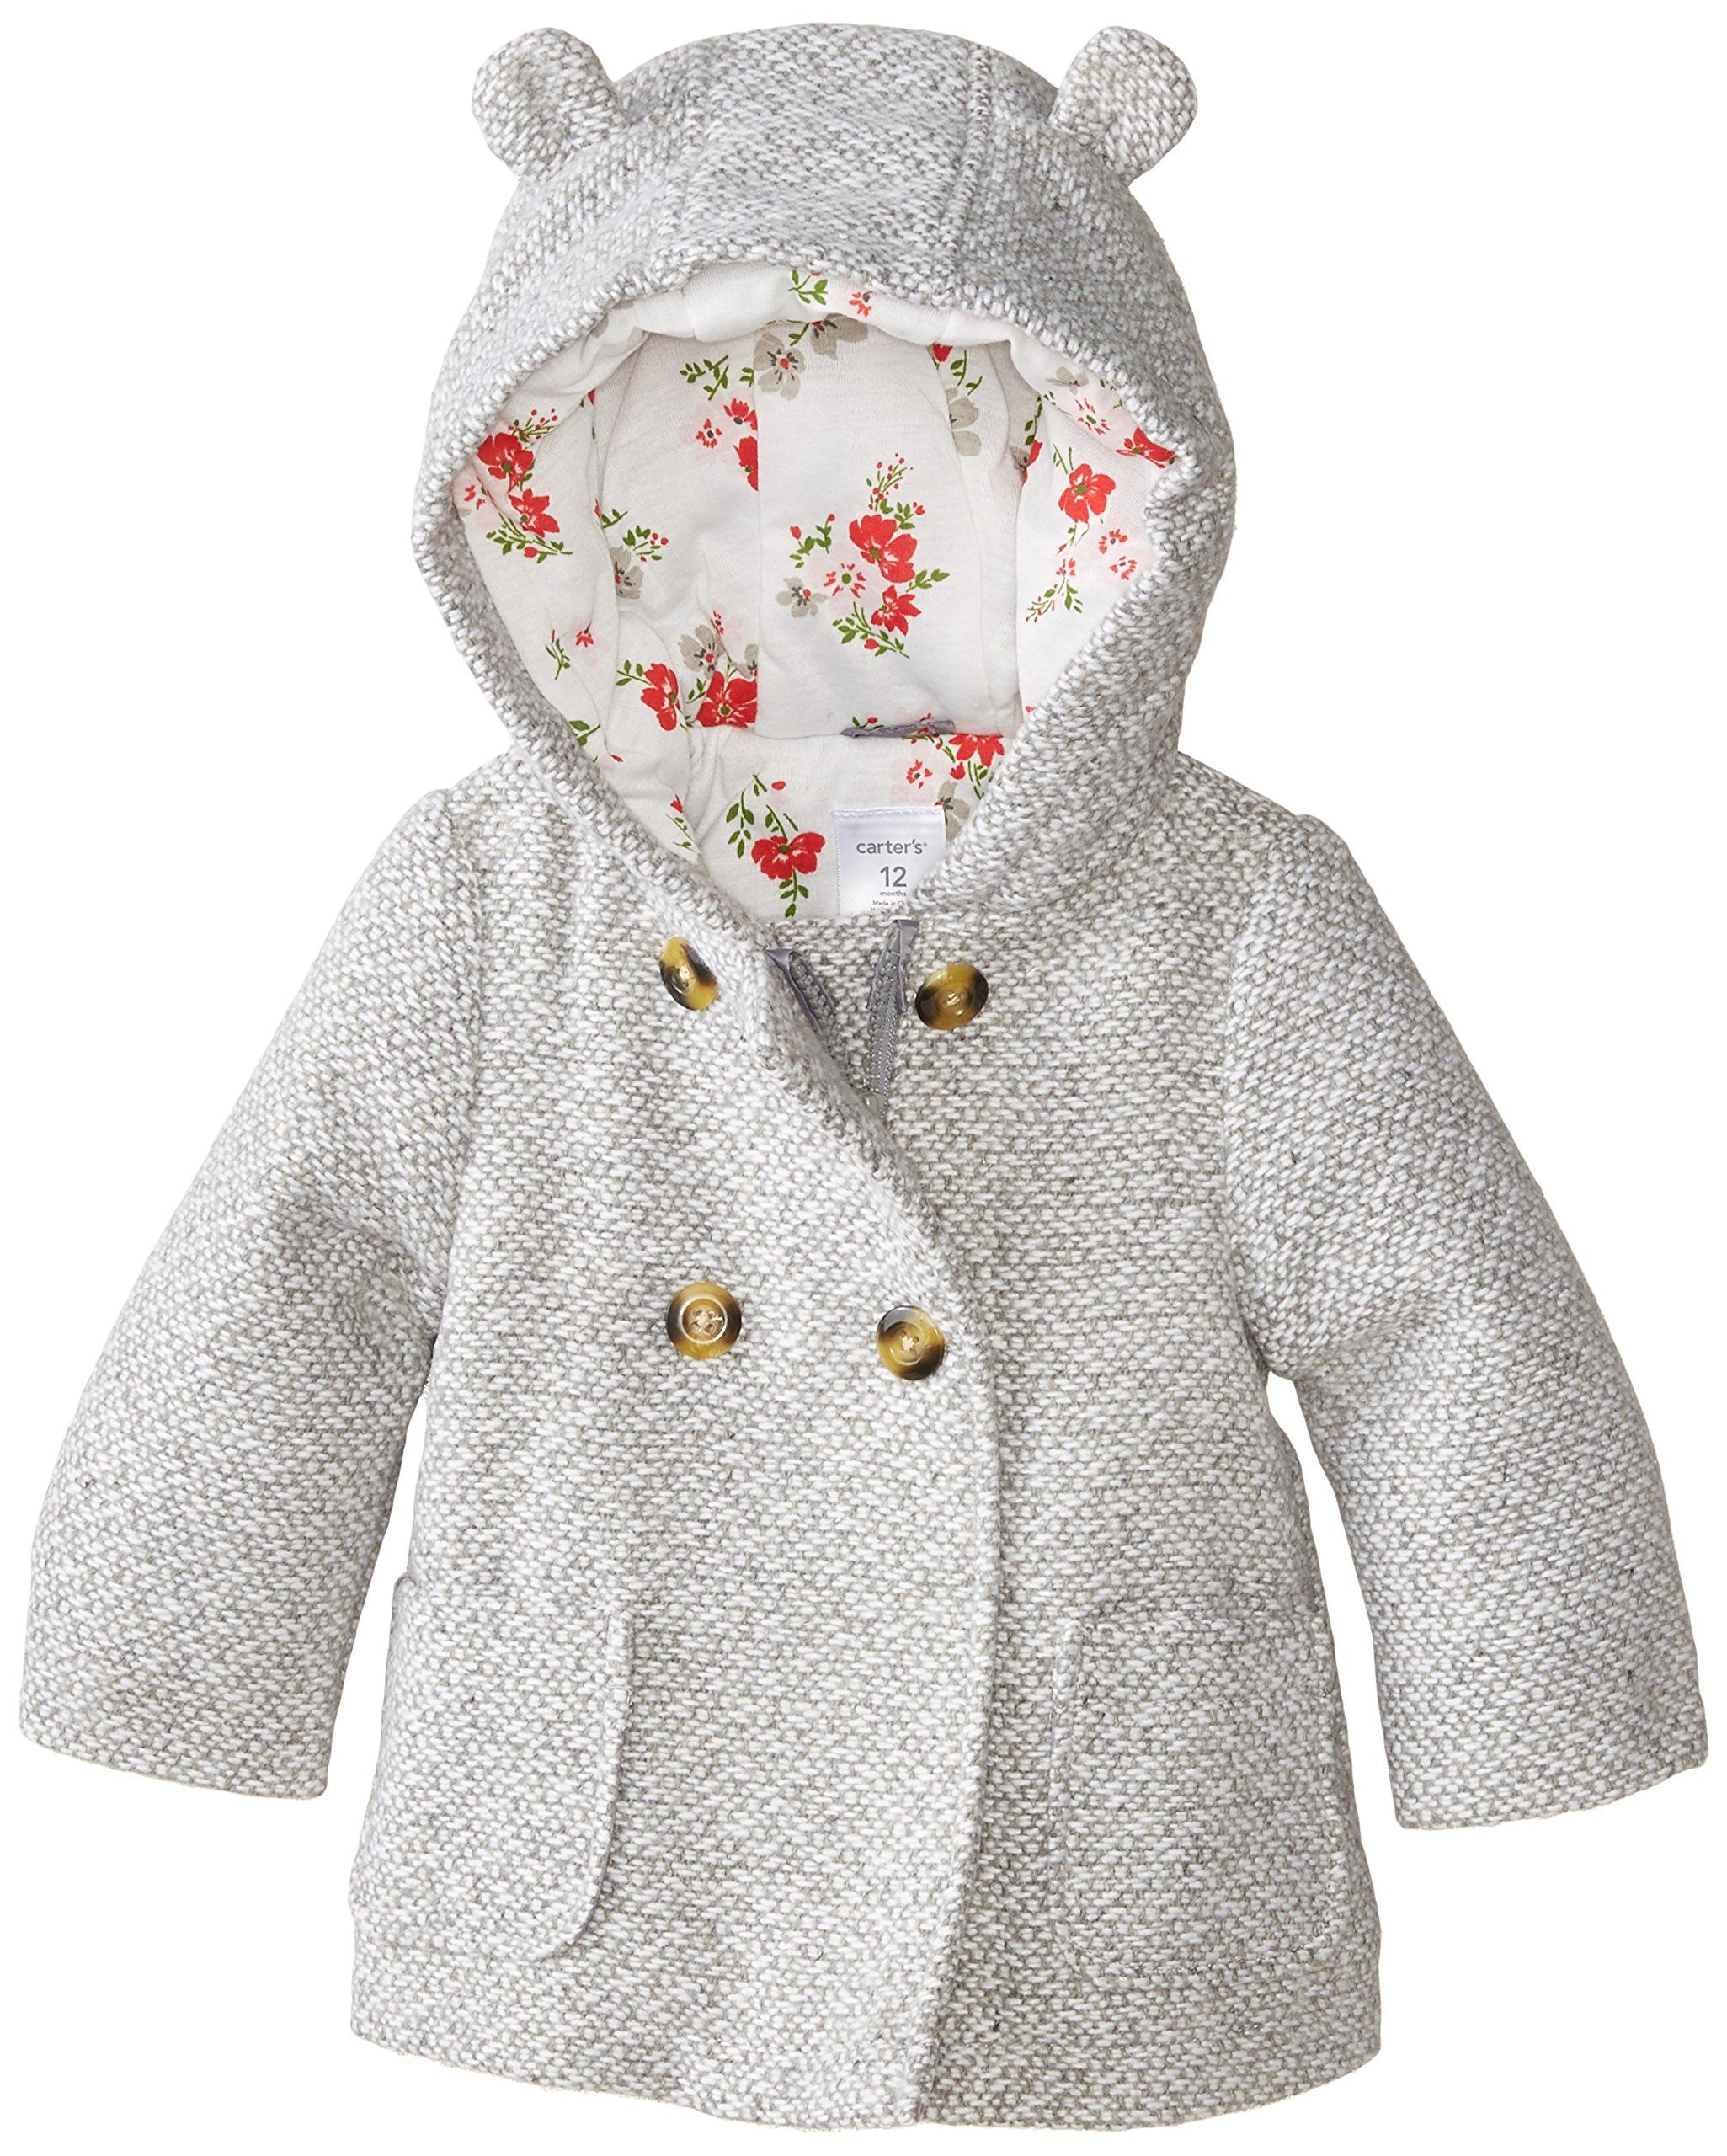 c3d2778ac Amazon.com  Carter s Baby Girls  Infants Trans Single Jacket ...